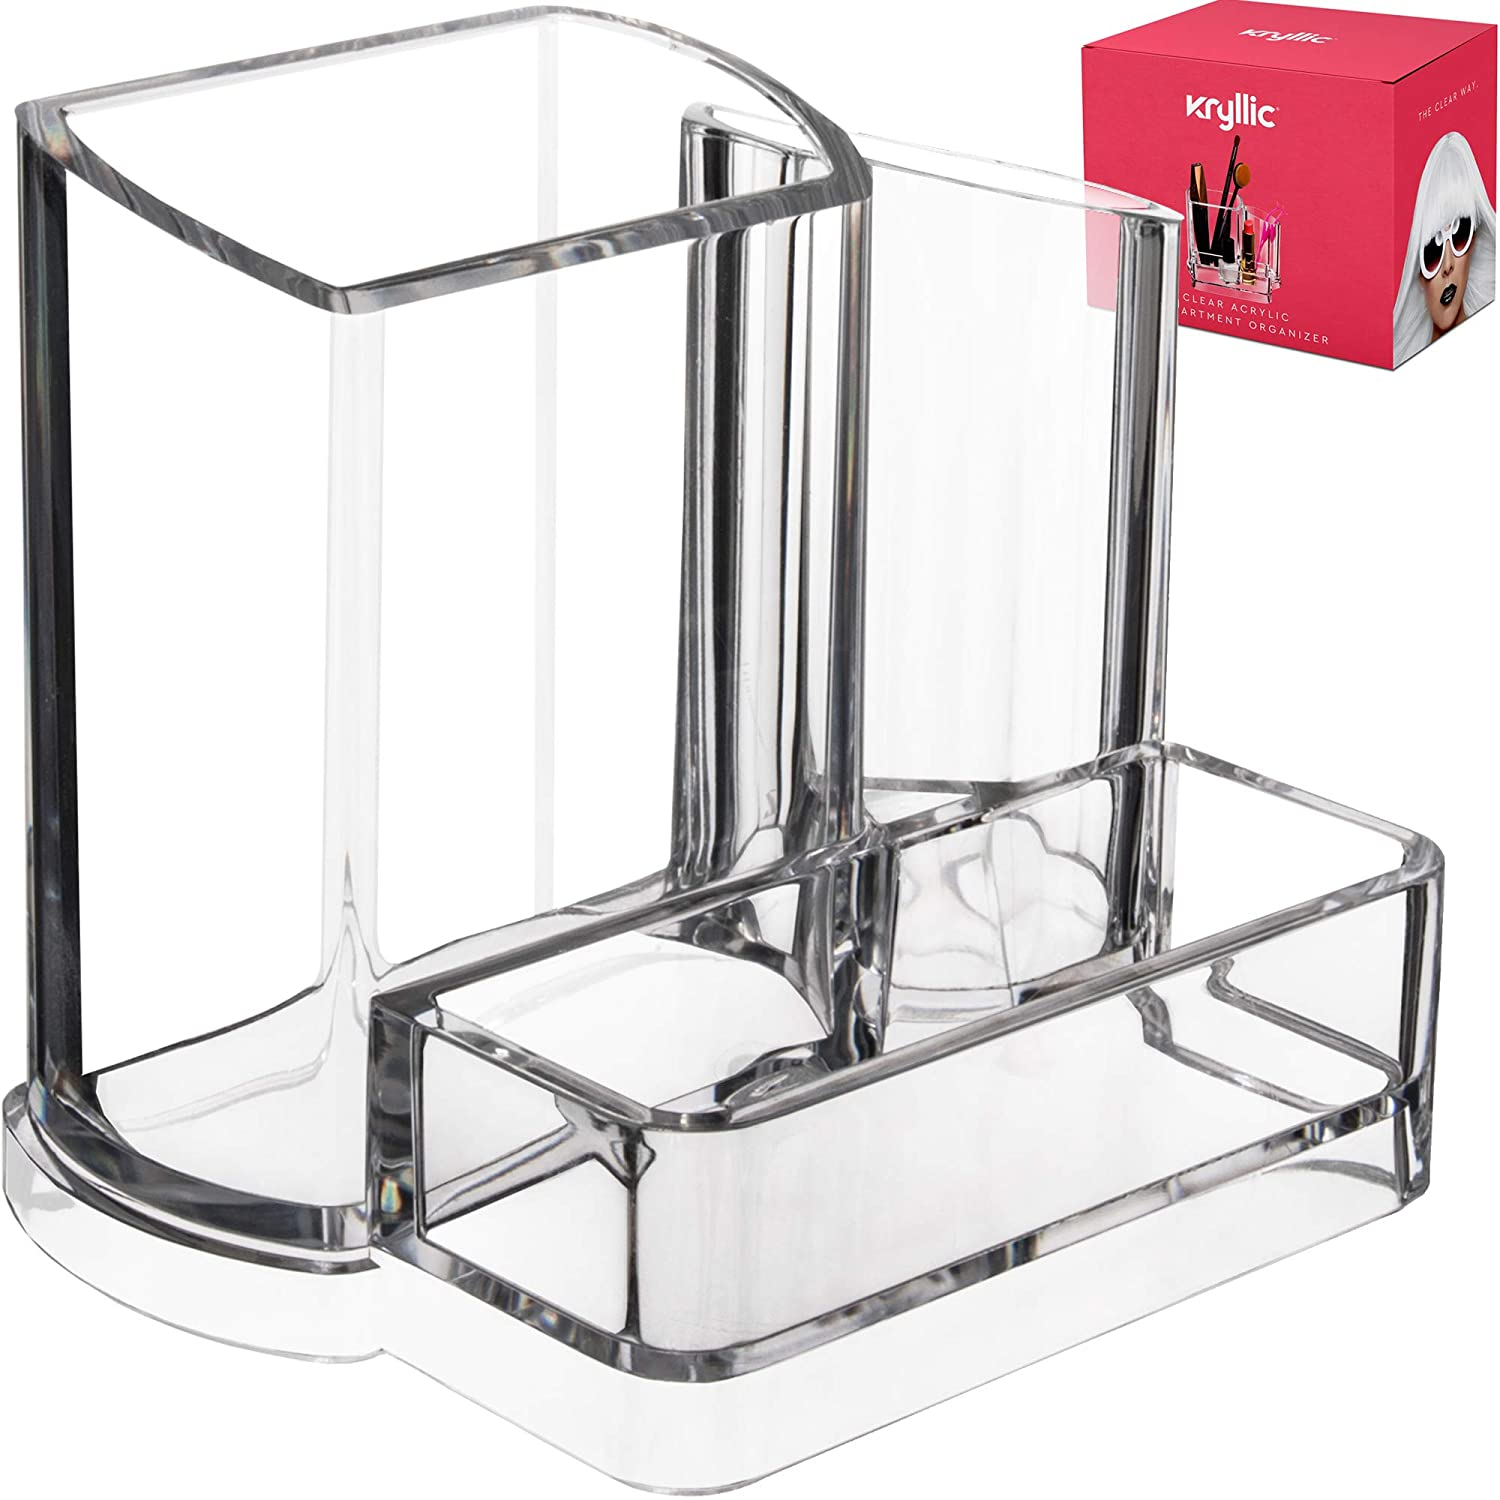 Acrylic Bathroom Office Accessories Holder - Clear 3 compartment vanity cosmetic storage organizer for toothbrushes jewelry makeup brush lipstick pens pencils scissors & business card desk supplies!